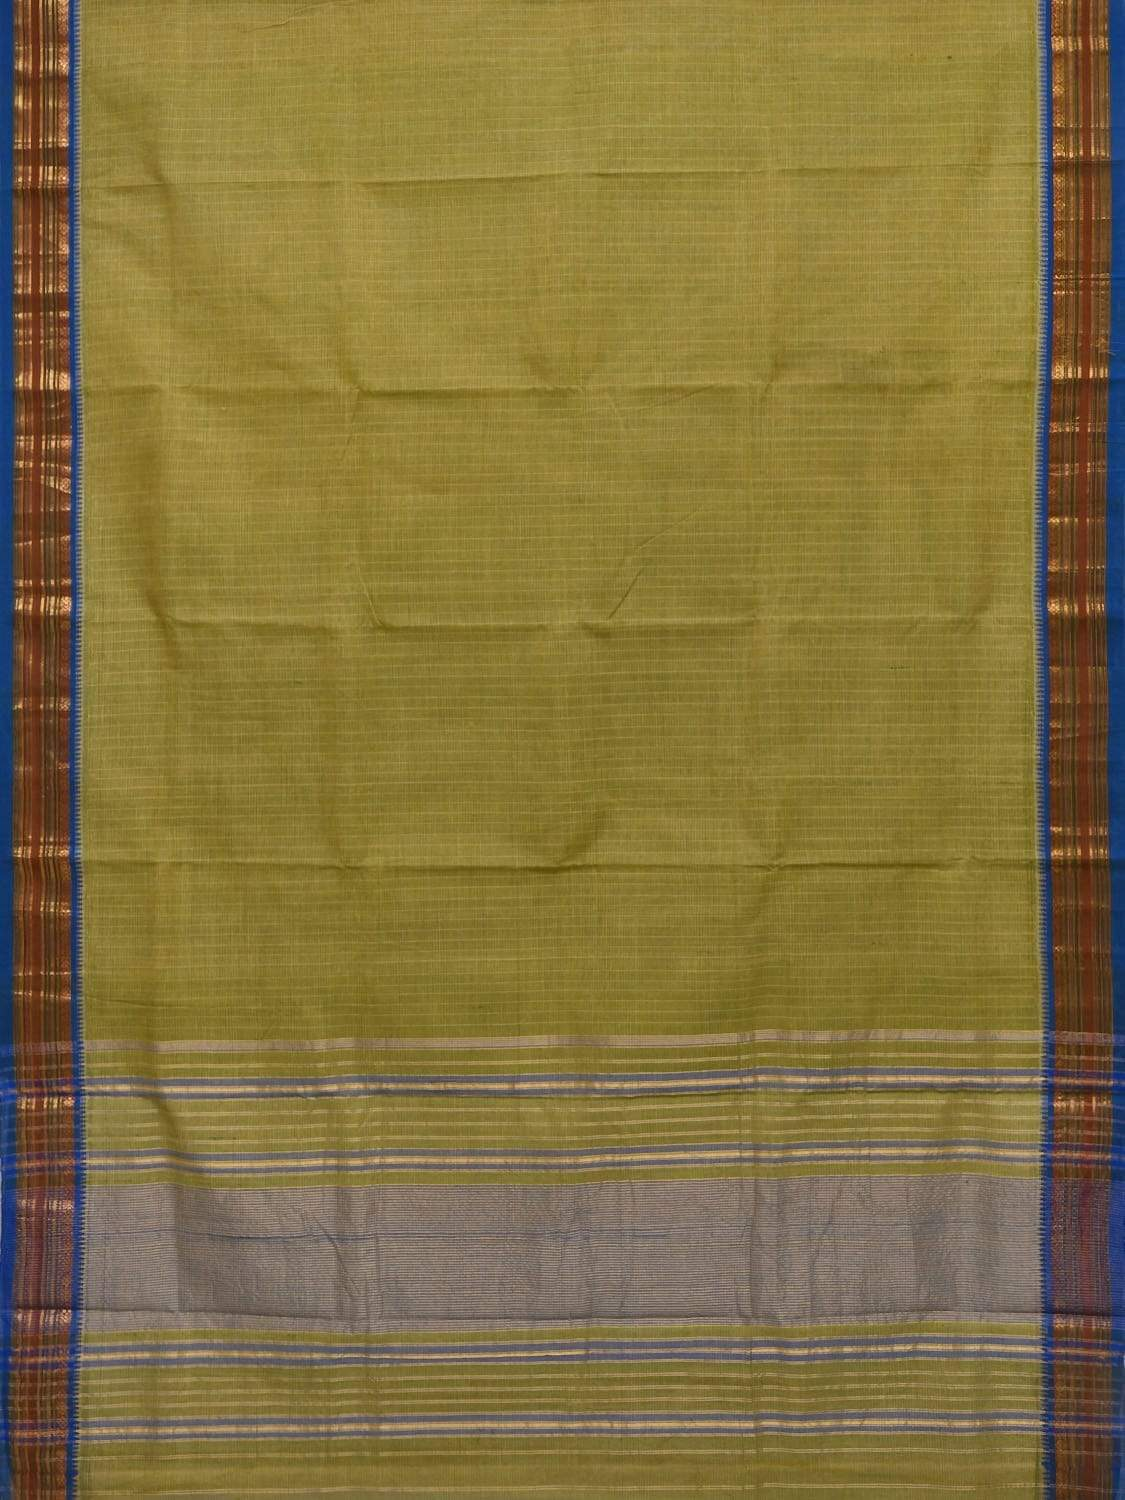 Green Narayanpet Cotton Handloom Saree with Checks Design No Blouse np0232